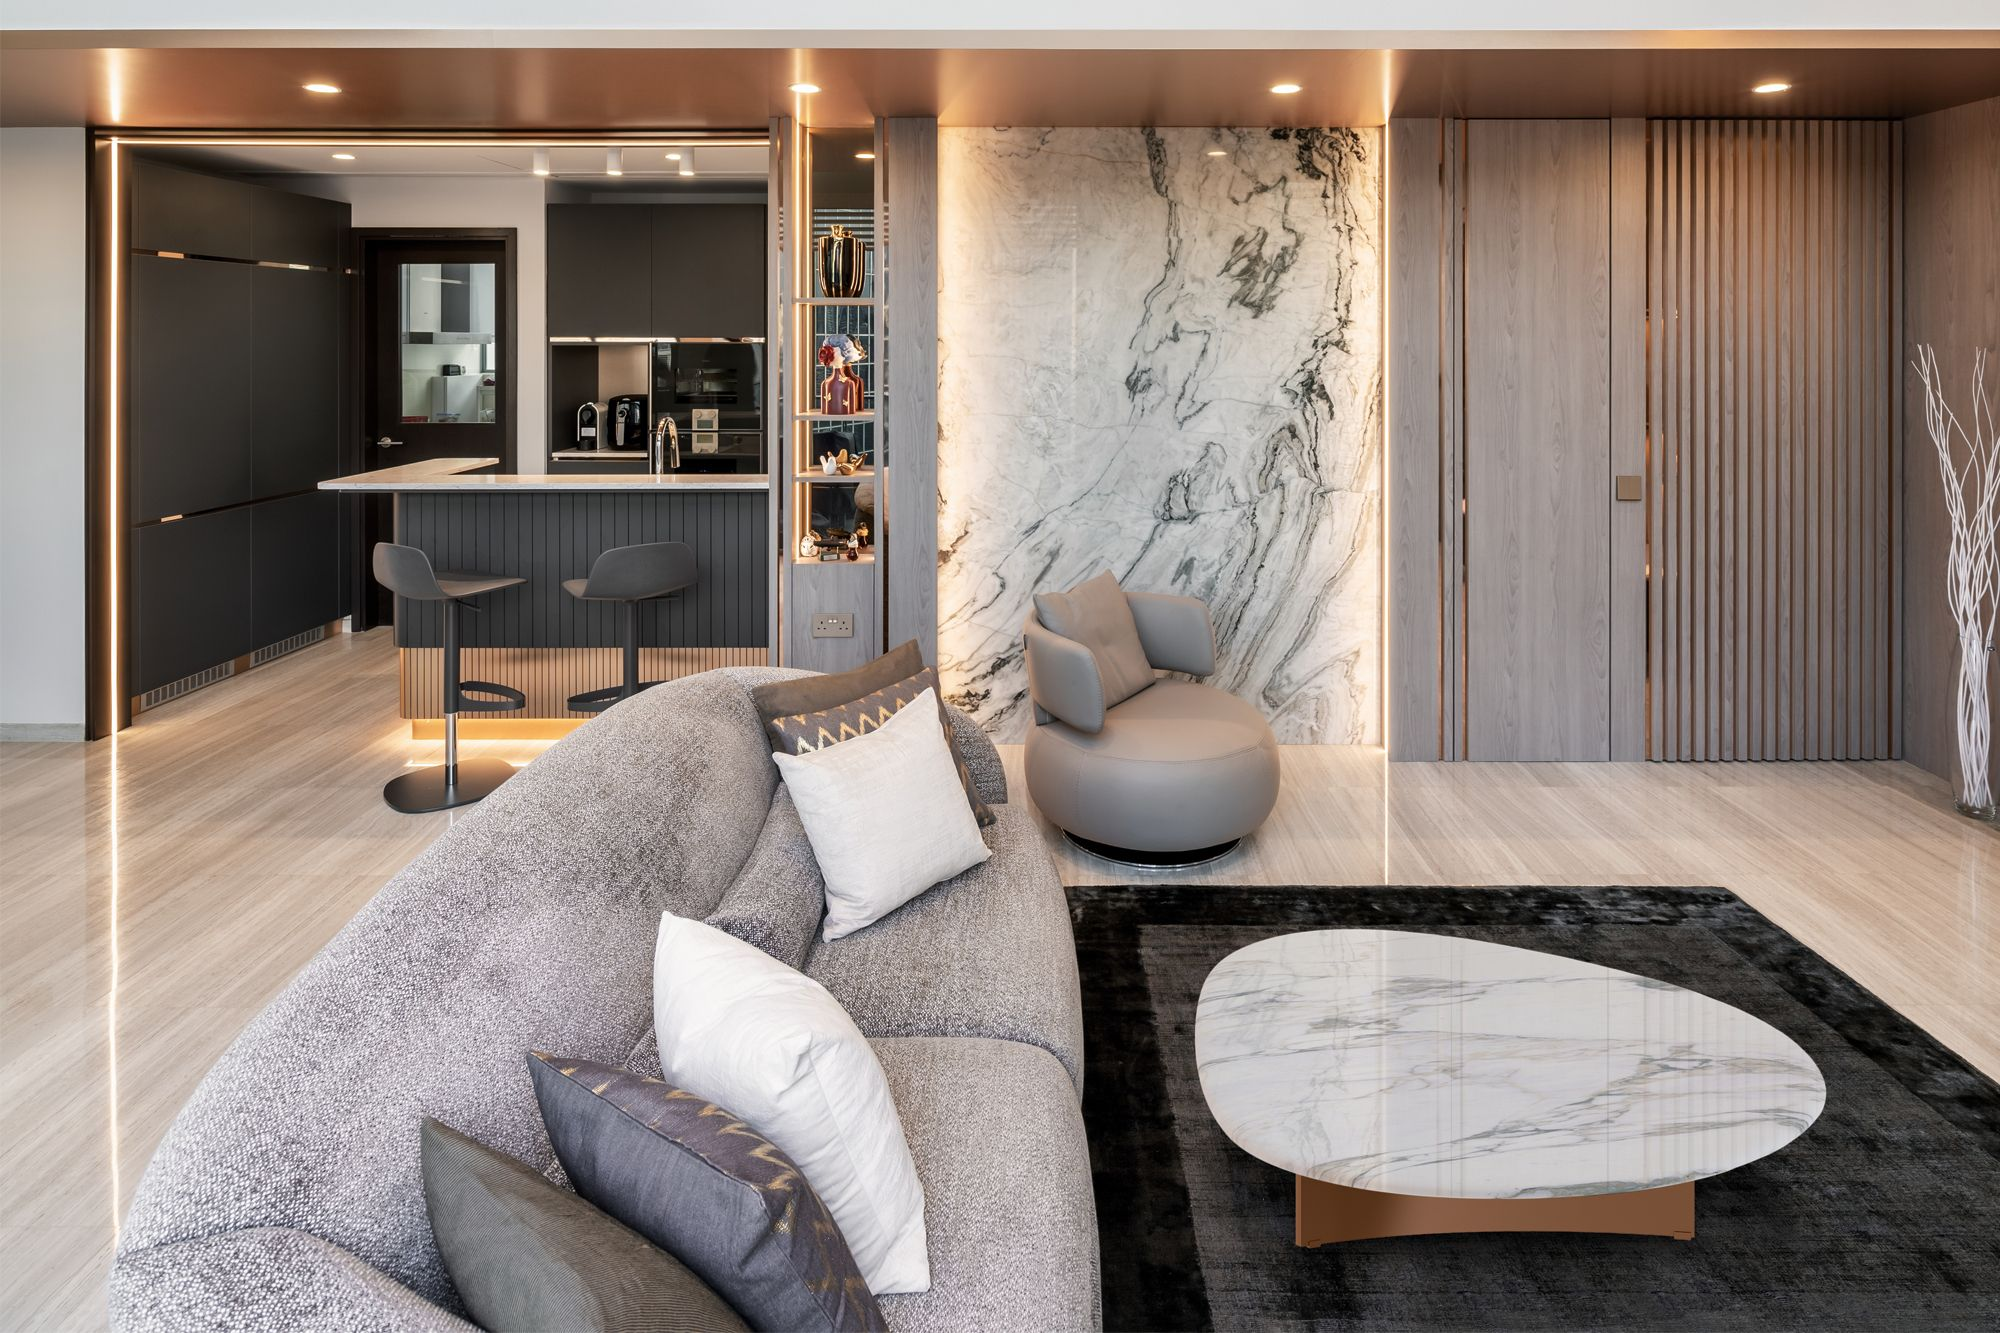 Home Tour: A Stylish Hotel-Inspired Duplex Apartment In Lincoln Suites